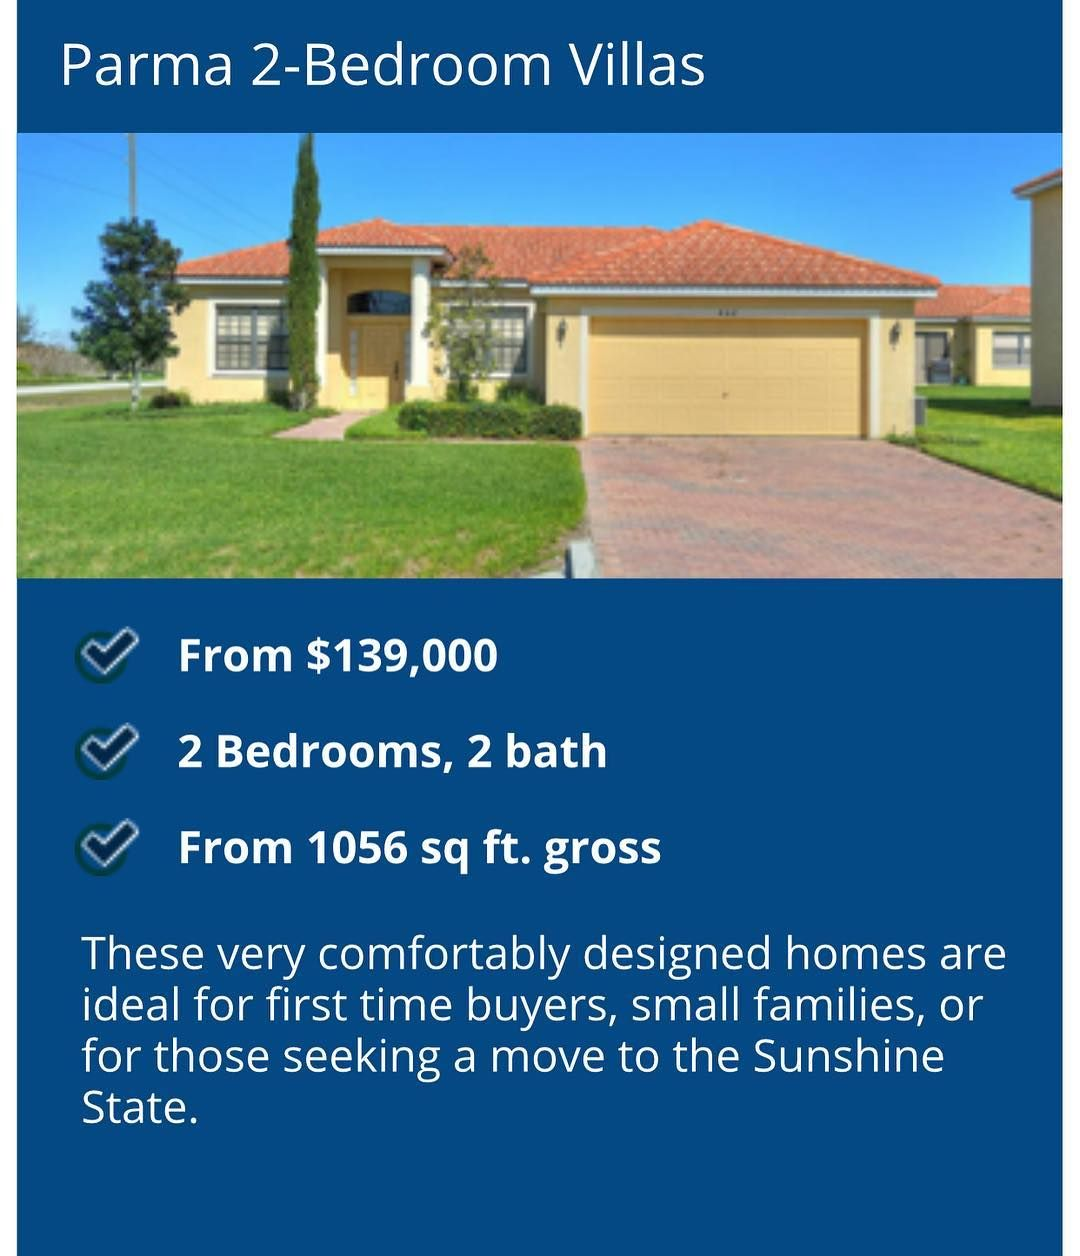 For Sale Poinciana Fl Newconstruction Call Me To Schedule A Showing Realestateagent Orlandoflorida Real Estate Agent New Construction Sunshine State